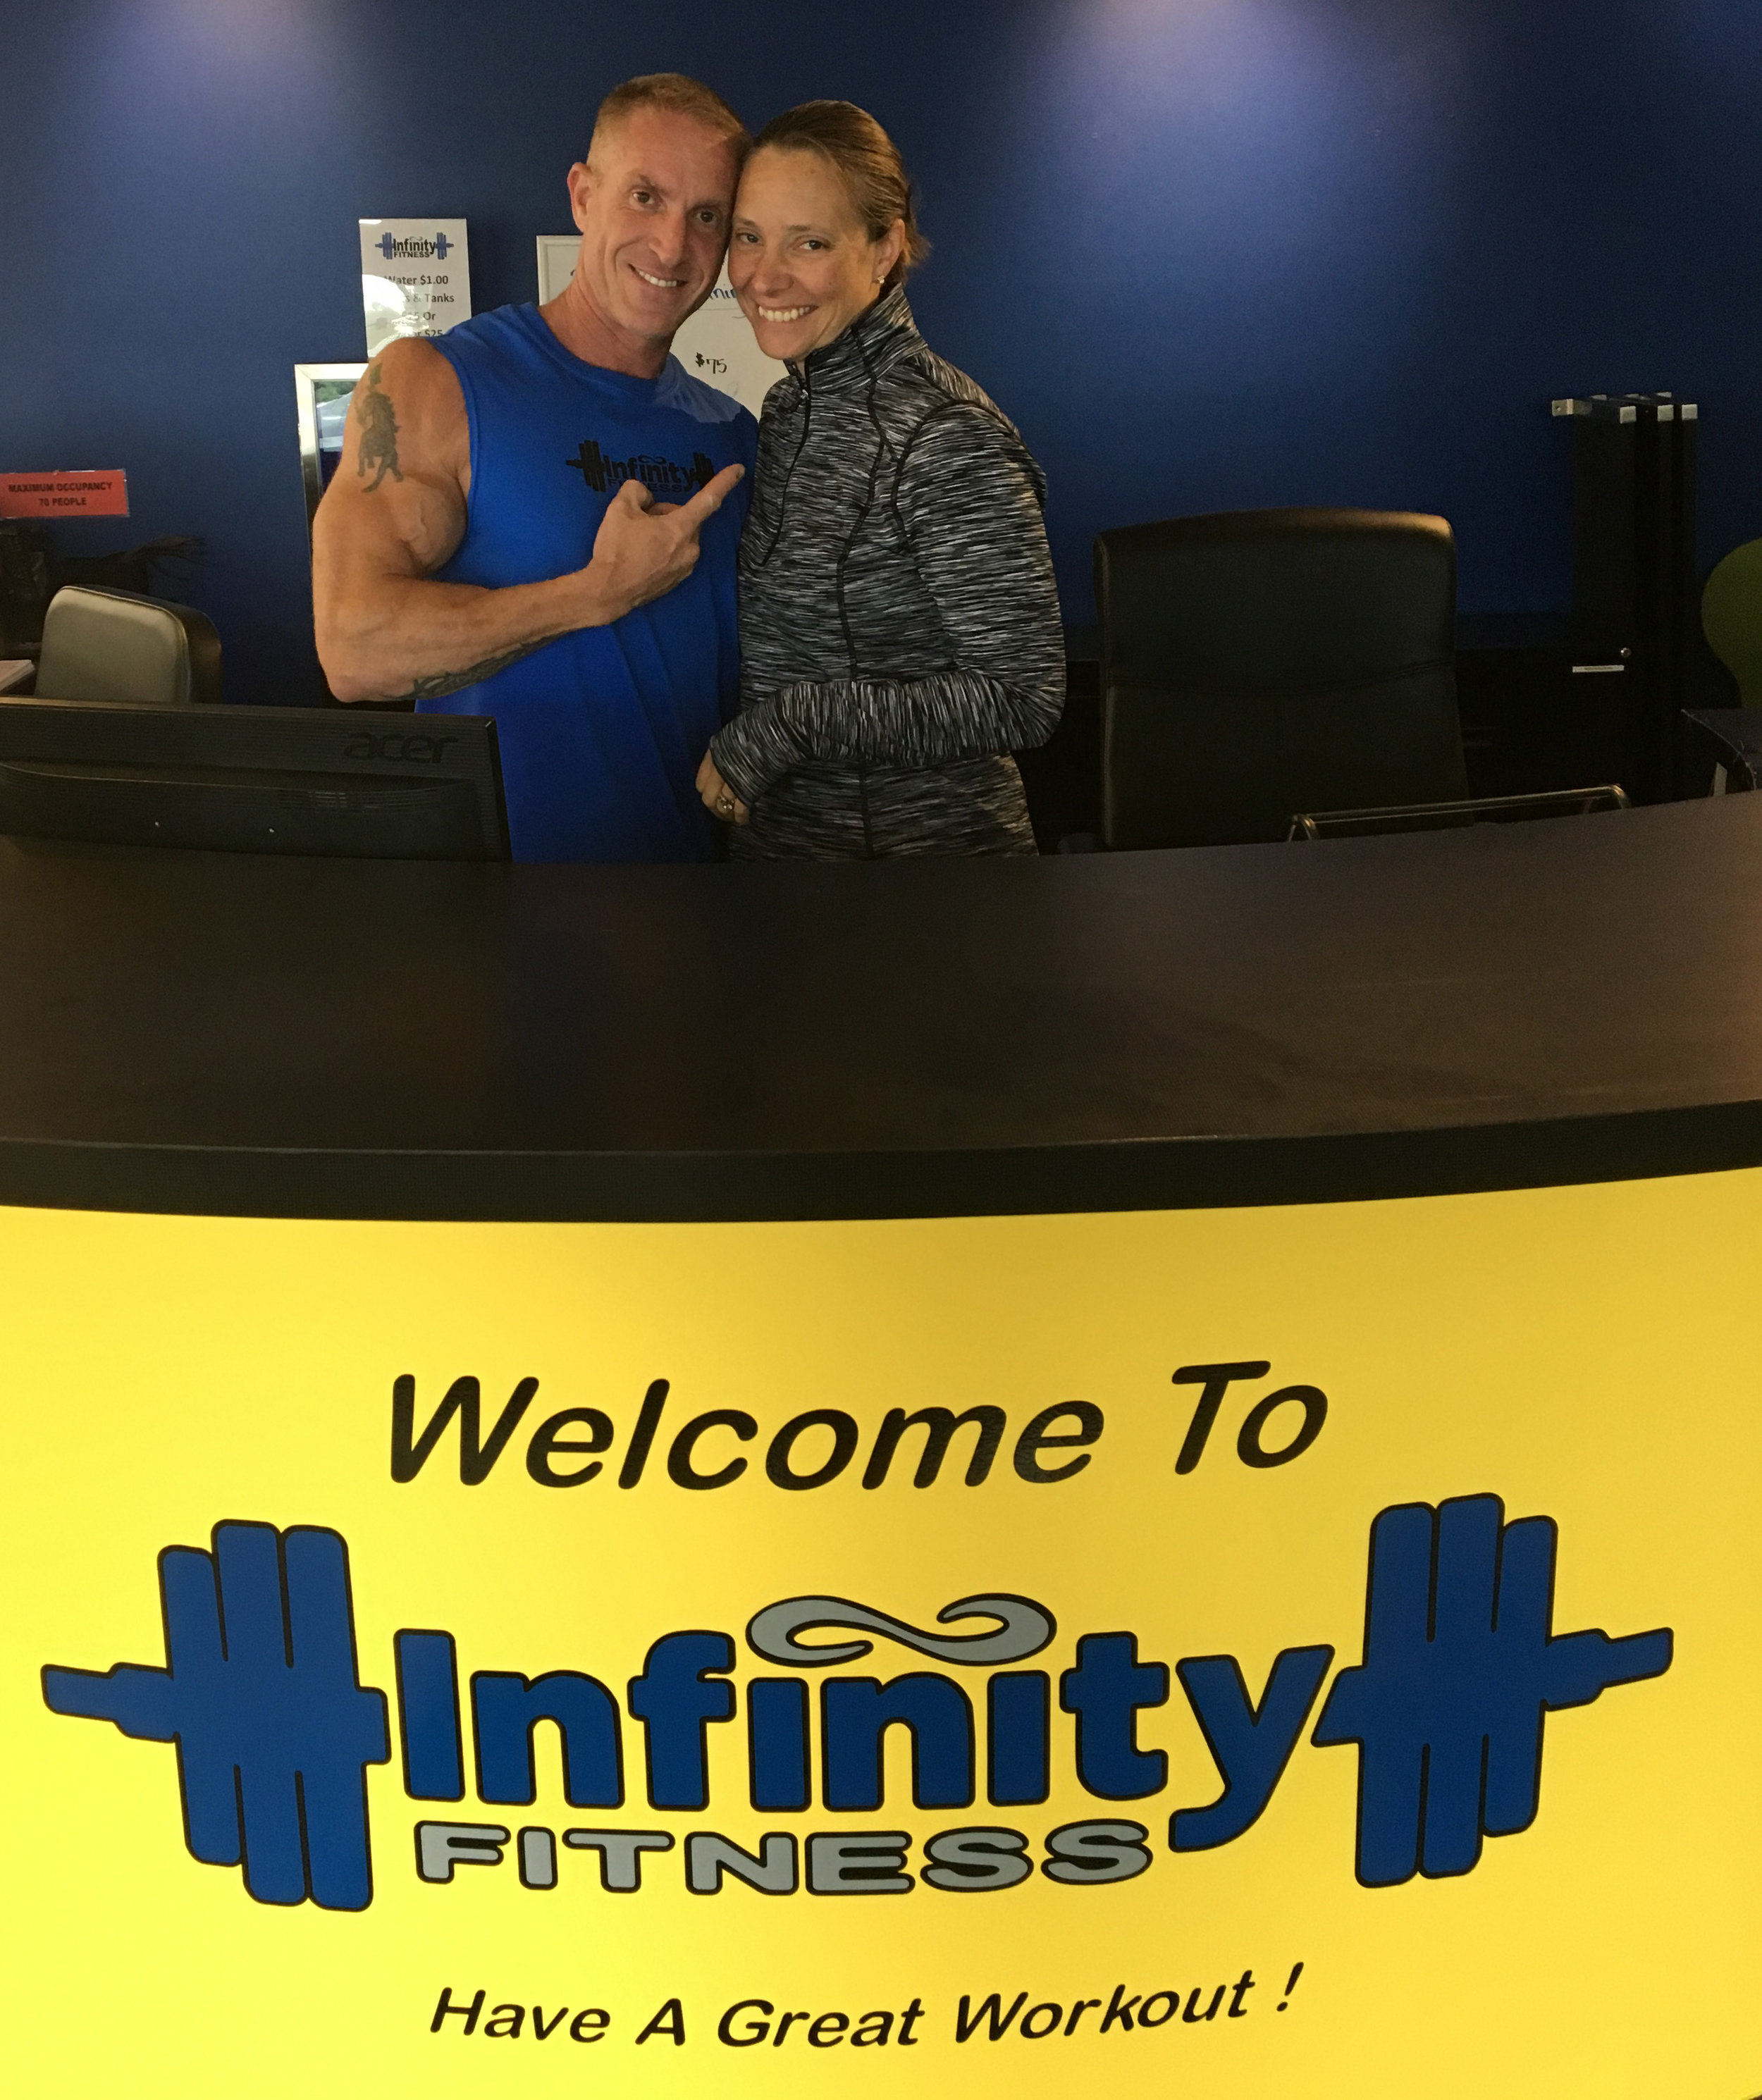 Darren and Debbie Levorce, owners of Infinity Fitness in Falmouth, MA